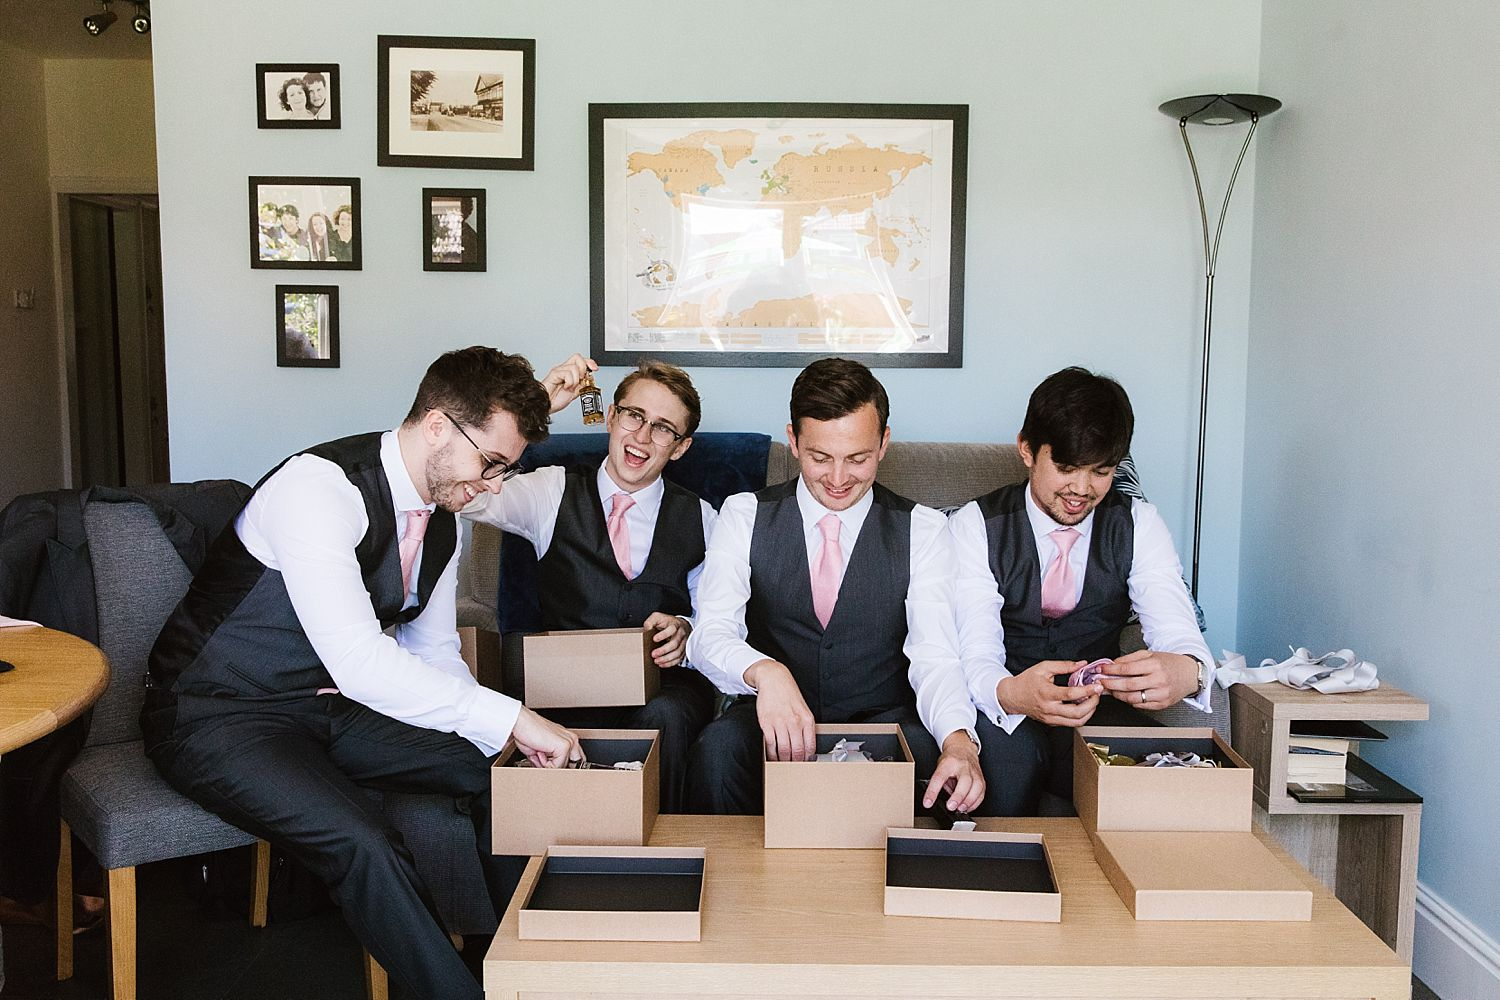 Best man and ushers open presents prior to the wedding at Sandhole Oak Barn, suits from The Grooms Room Essex